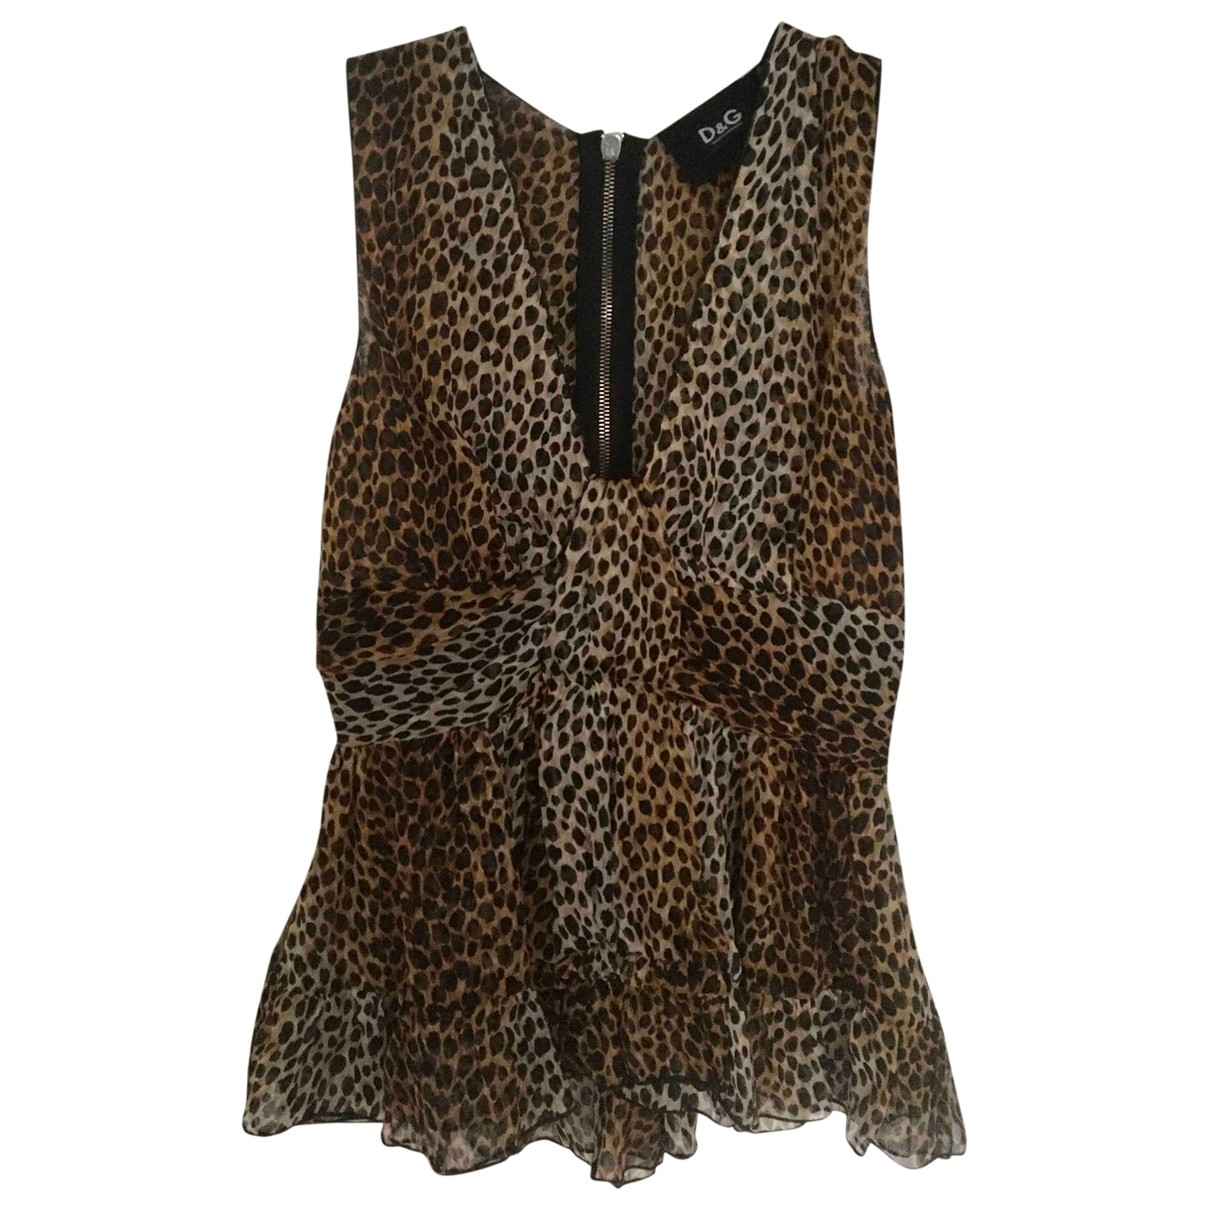 D&g \N Silk  top for Women XS International